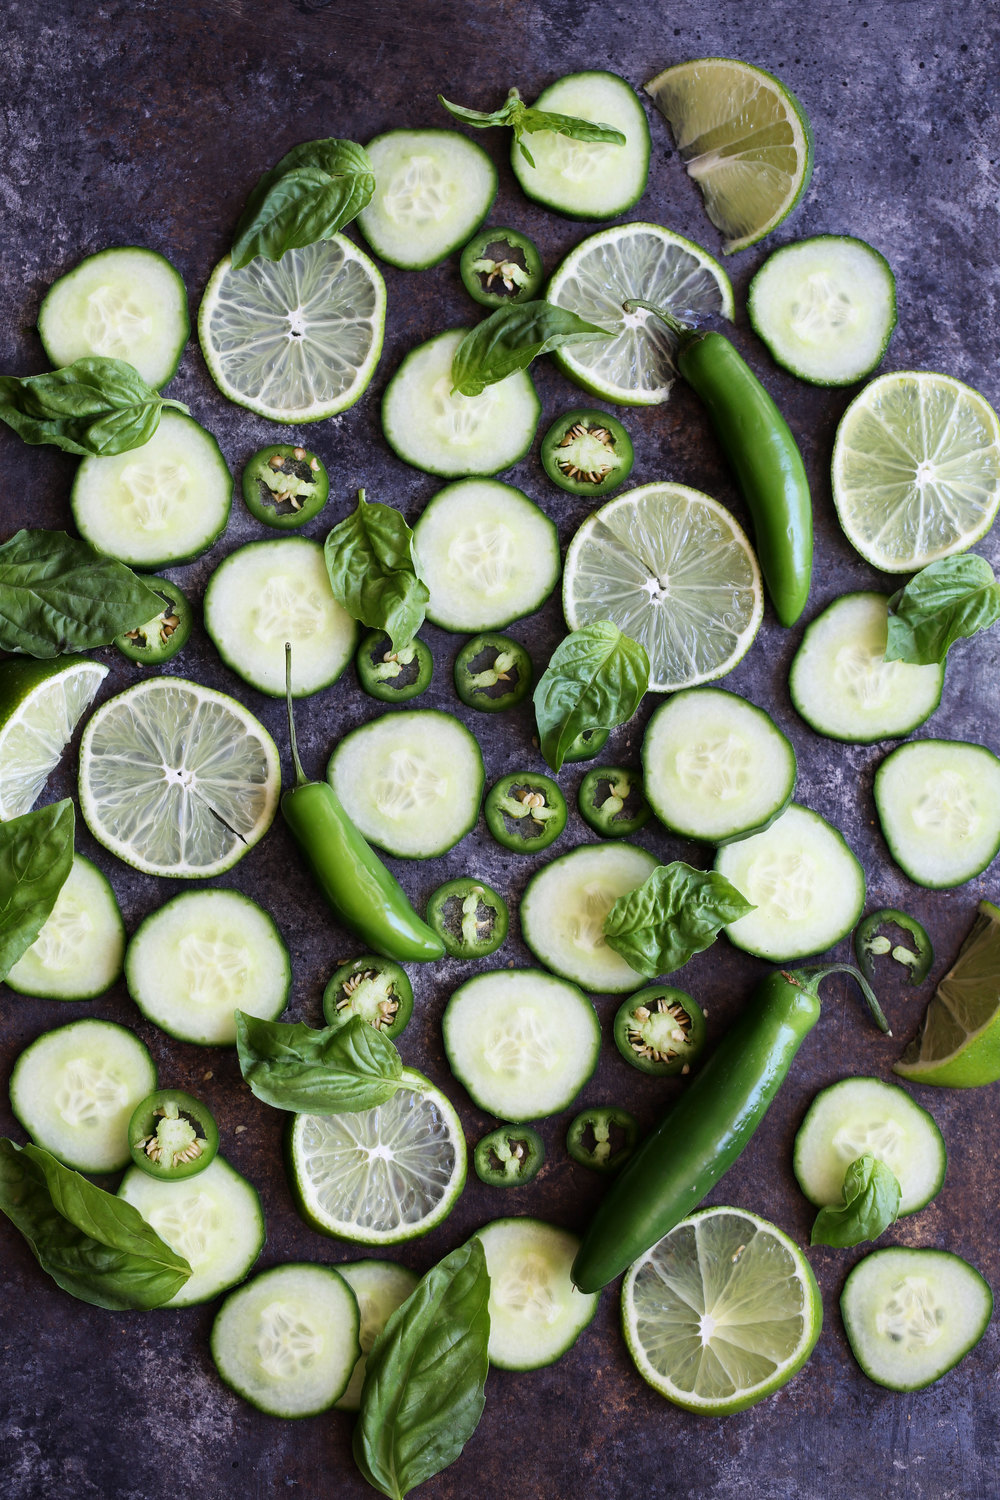 basil cucumber lime serrano peppers